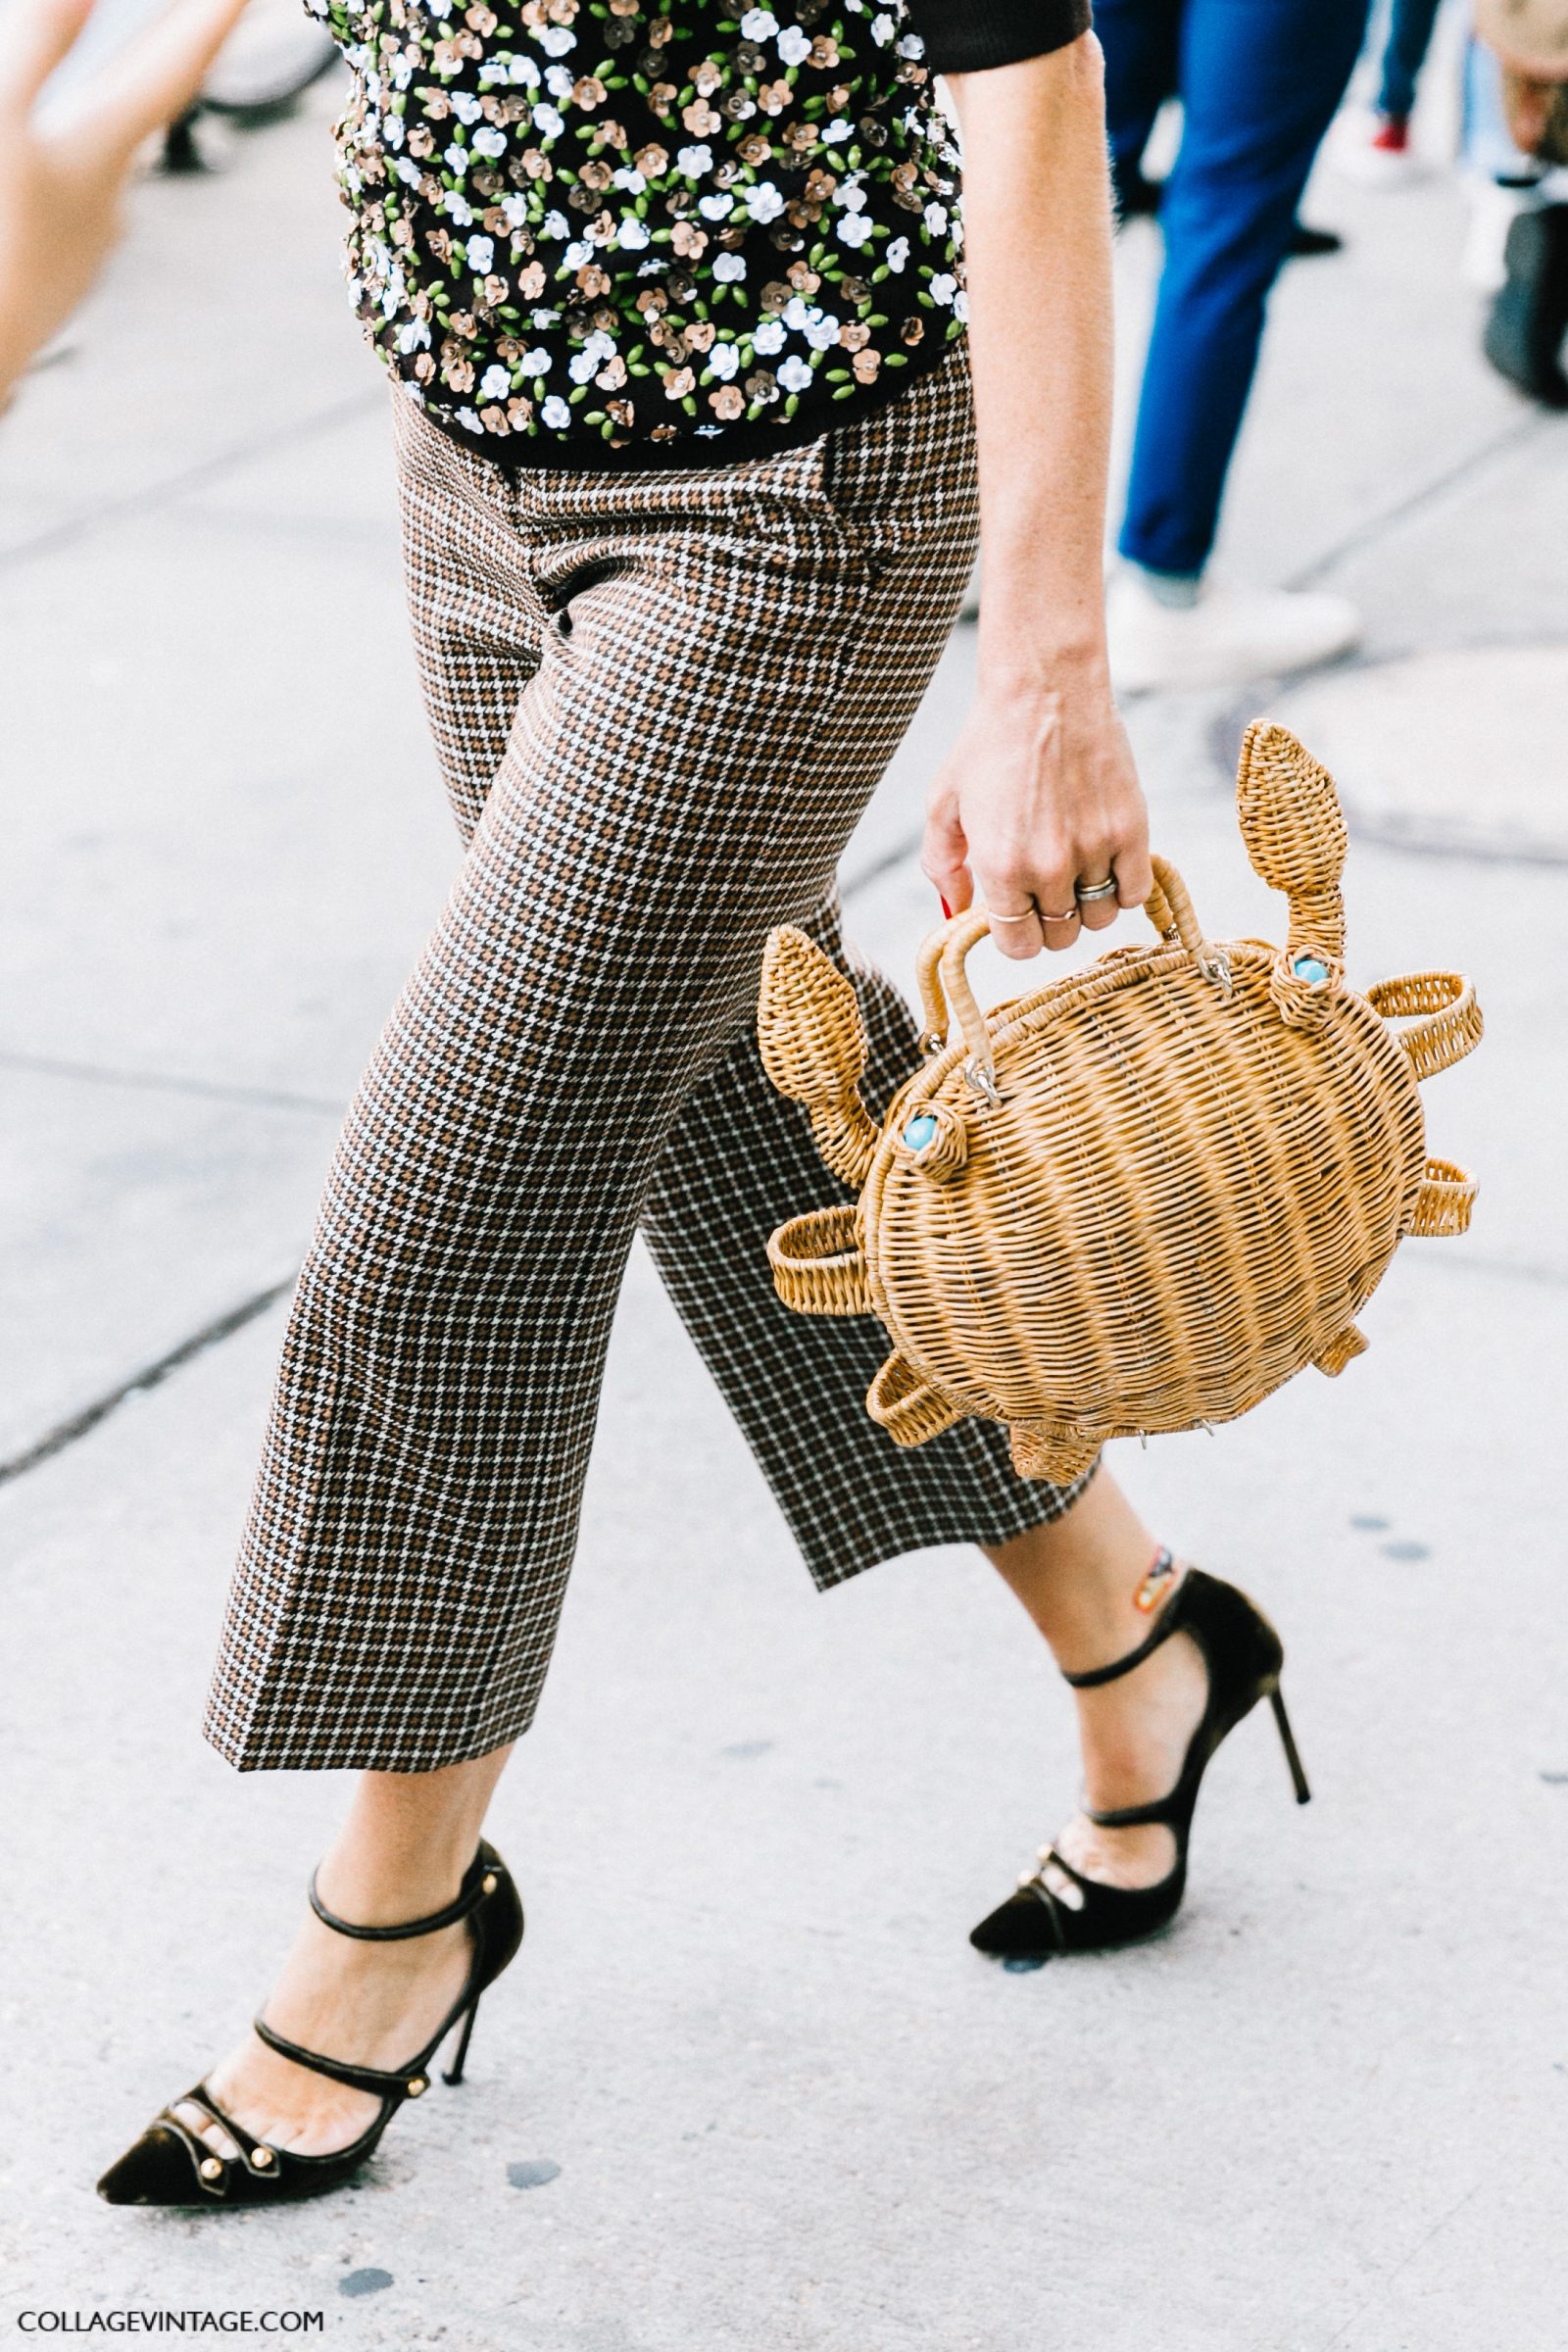 nyfw-new_york_fashion_week_ss17-street_style-outfits-collage_vintage-vintage-del_pozo-michael_kors-hugo_boss-48